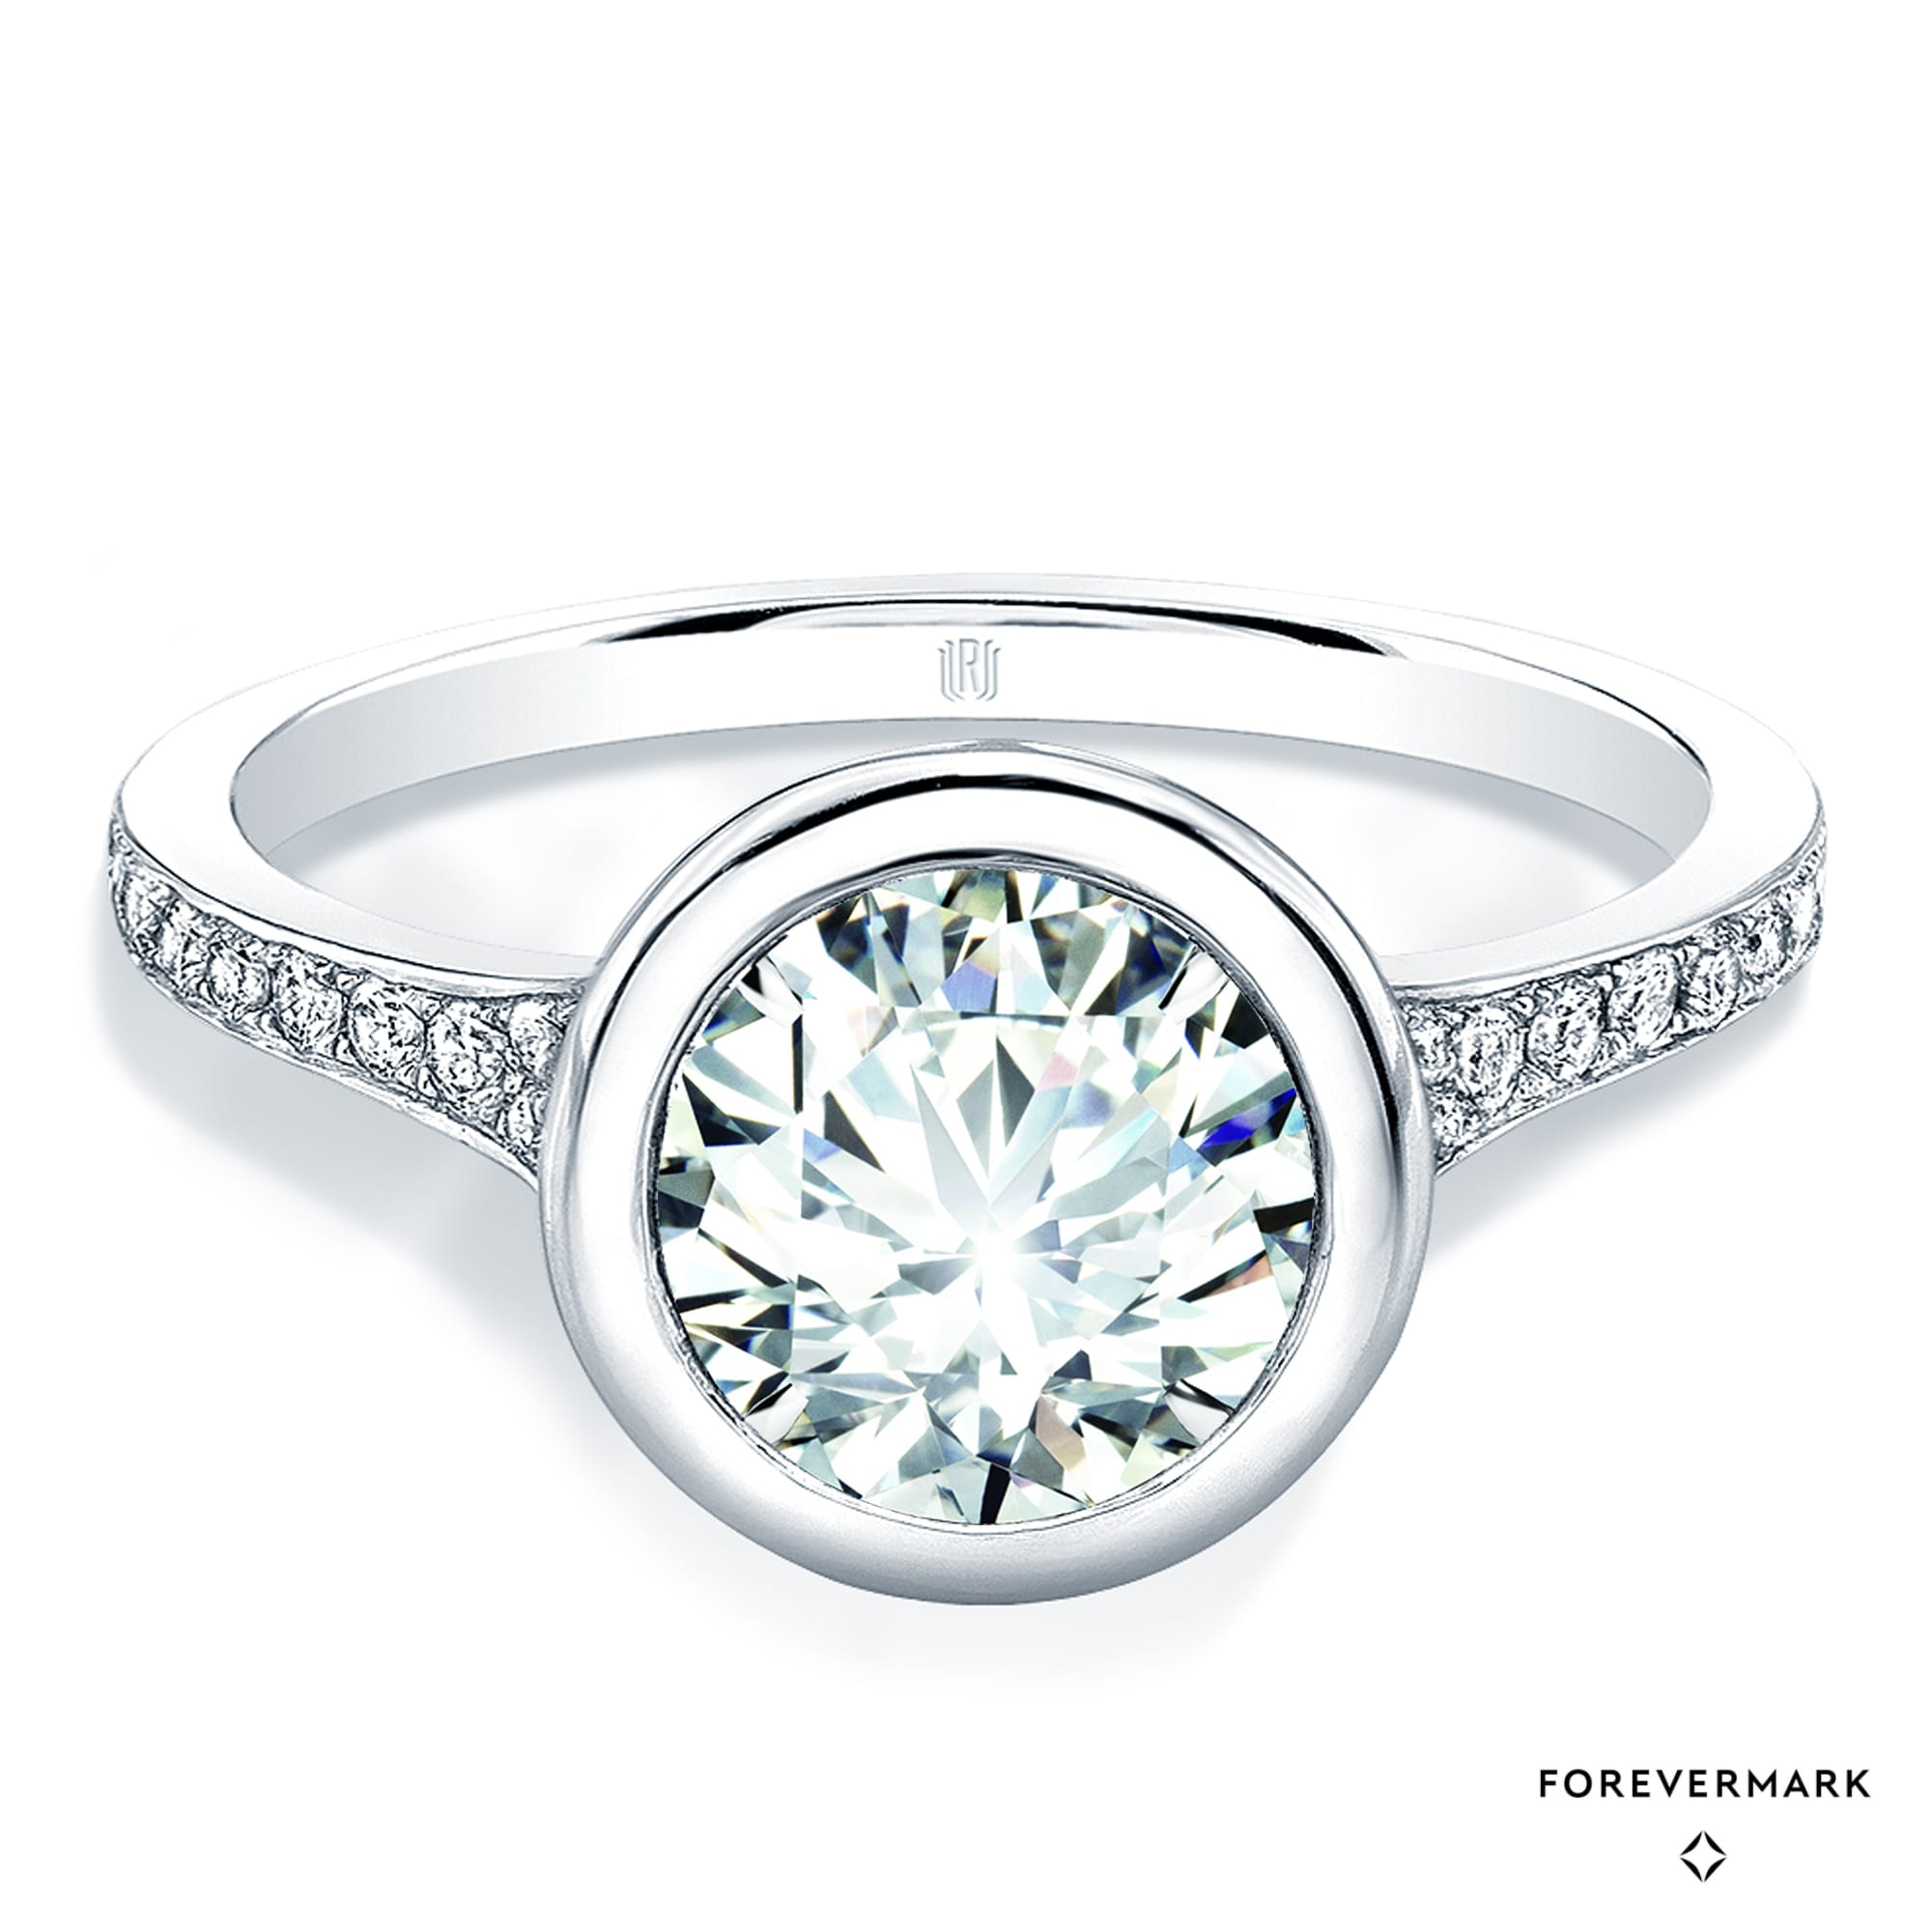 Forevermark Diamond Engagement Ring in 18kt White Gold with Side Stones